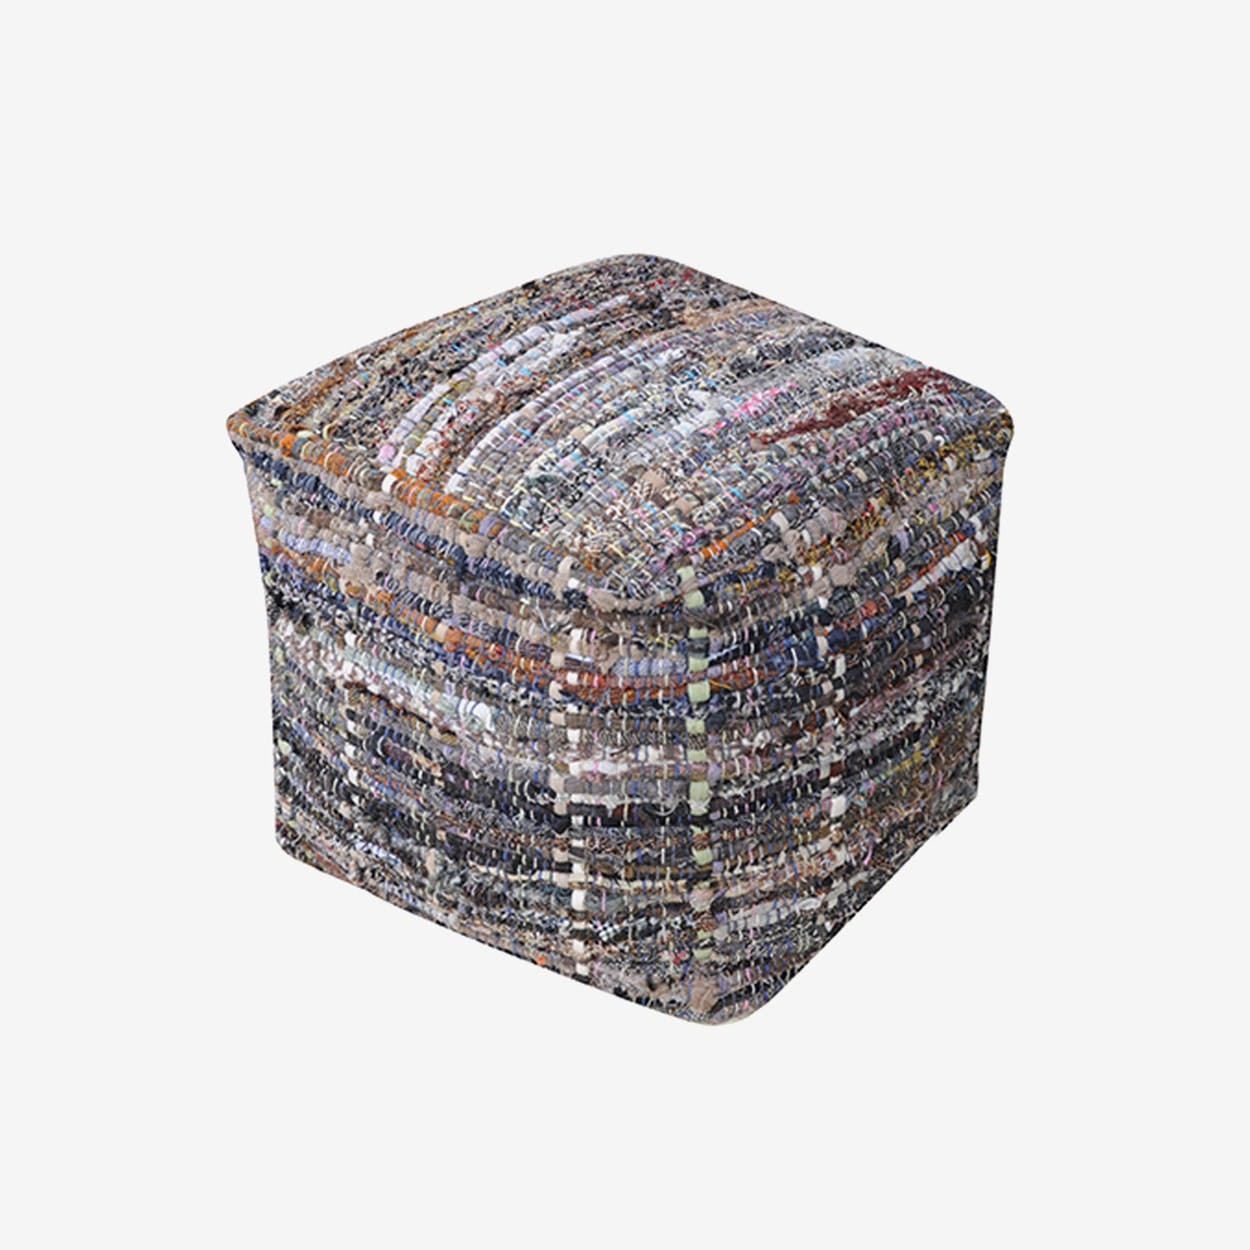 HARRIS Pouf in Grey/Blue - The Rug Republic